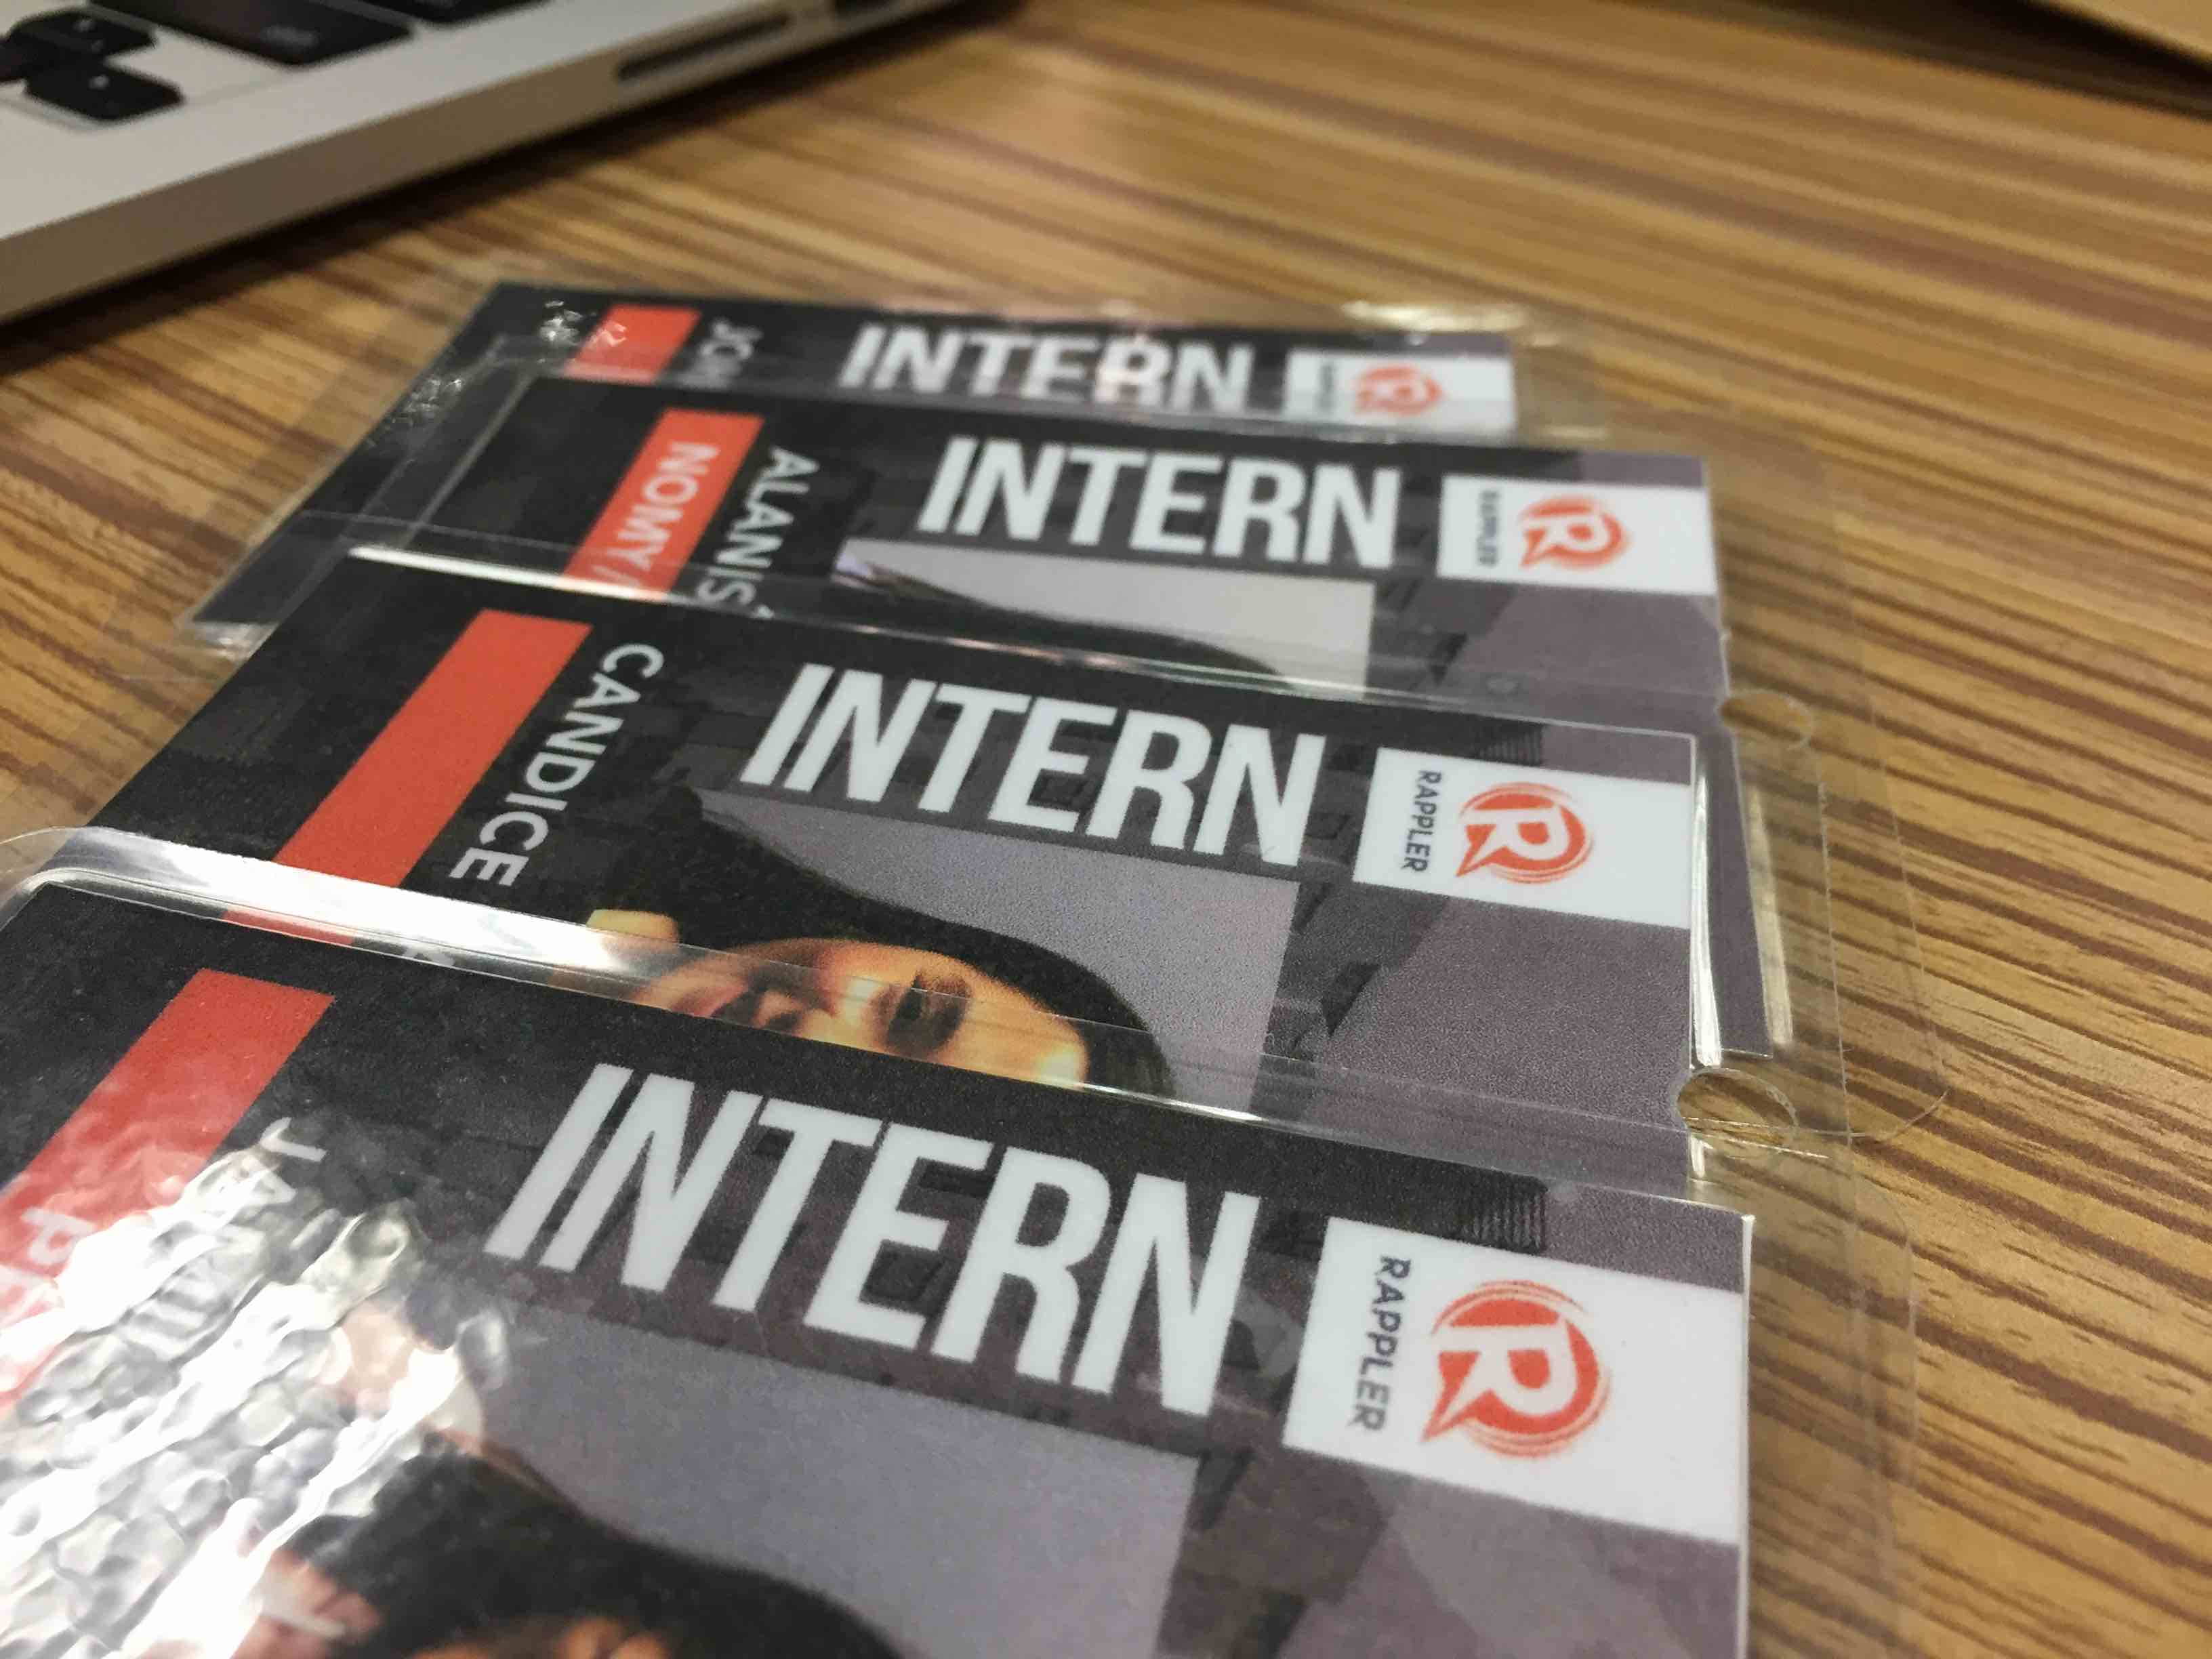 Want to be a Rappler intern?